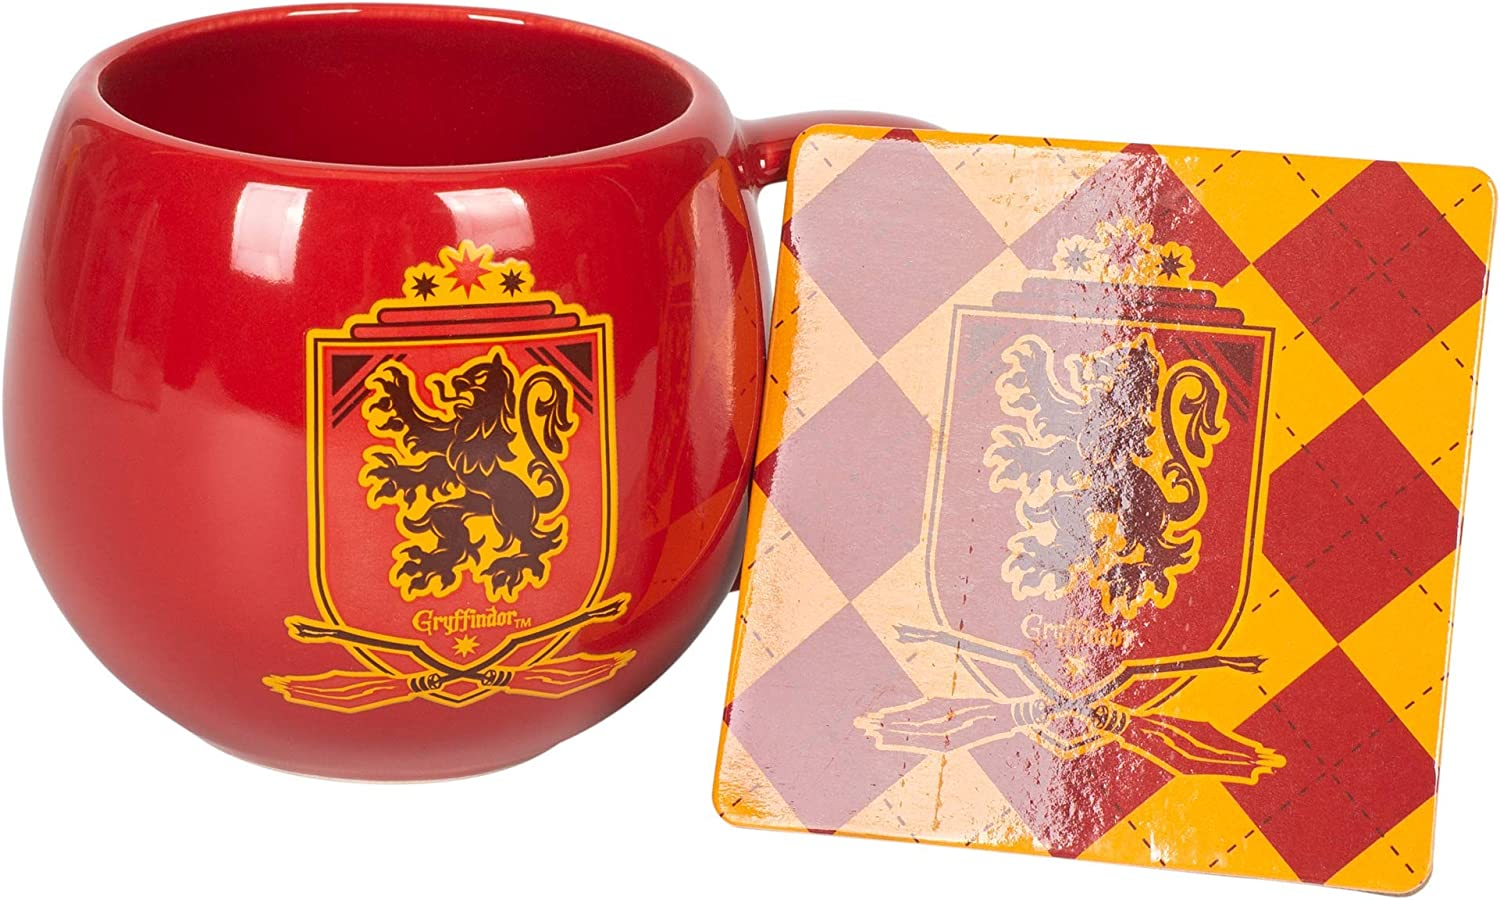 HARRY POTTER CUP CERAMIC TRAVEL COFFEE MUG THE GRYFFINDOR HOUSE CREST